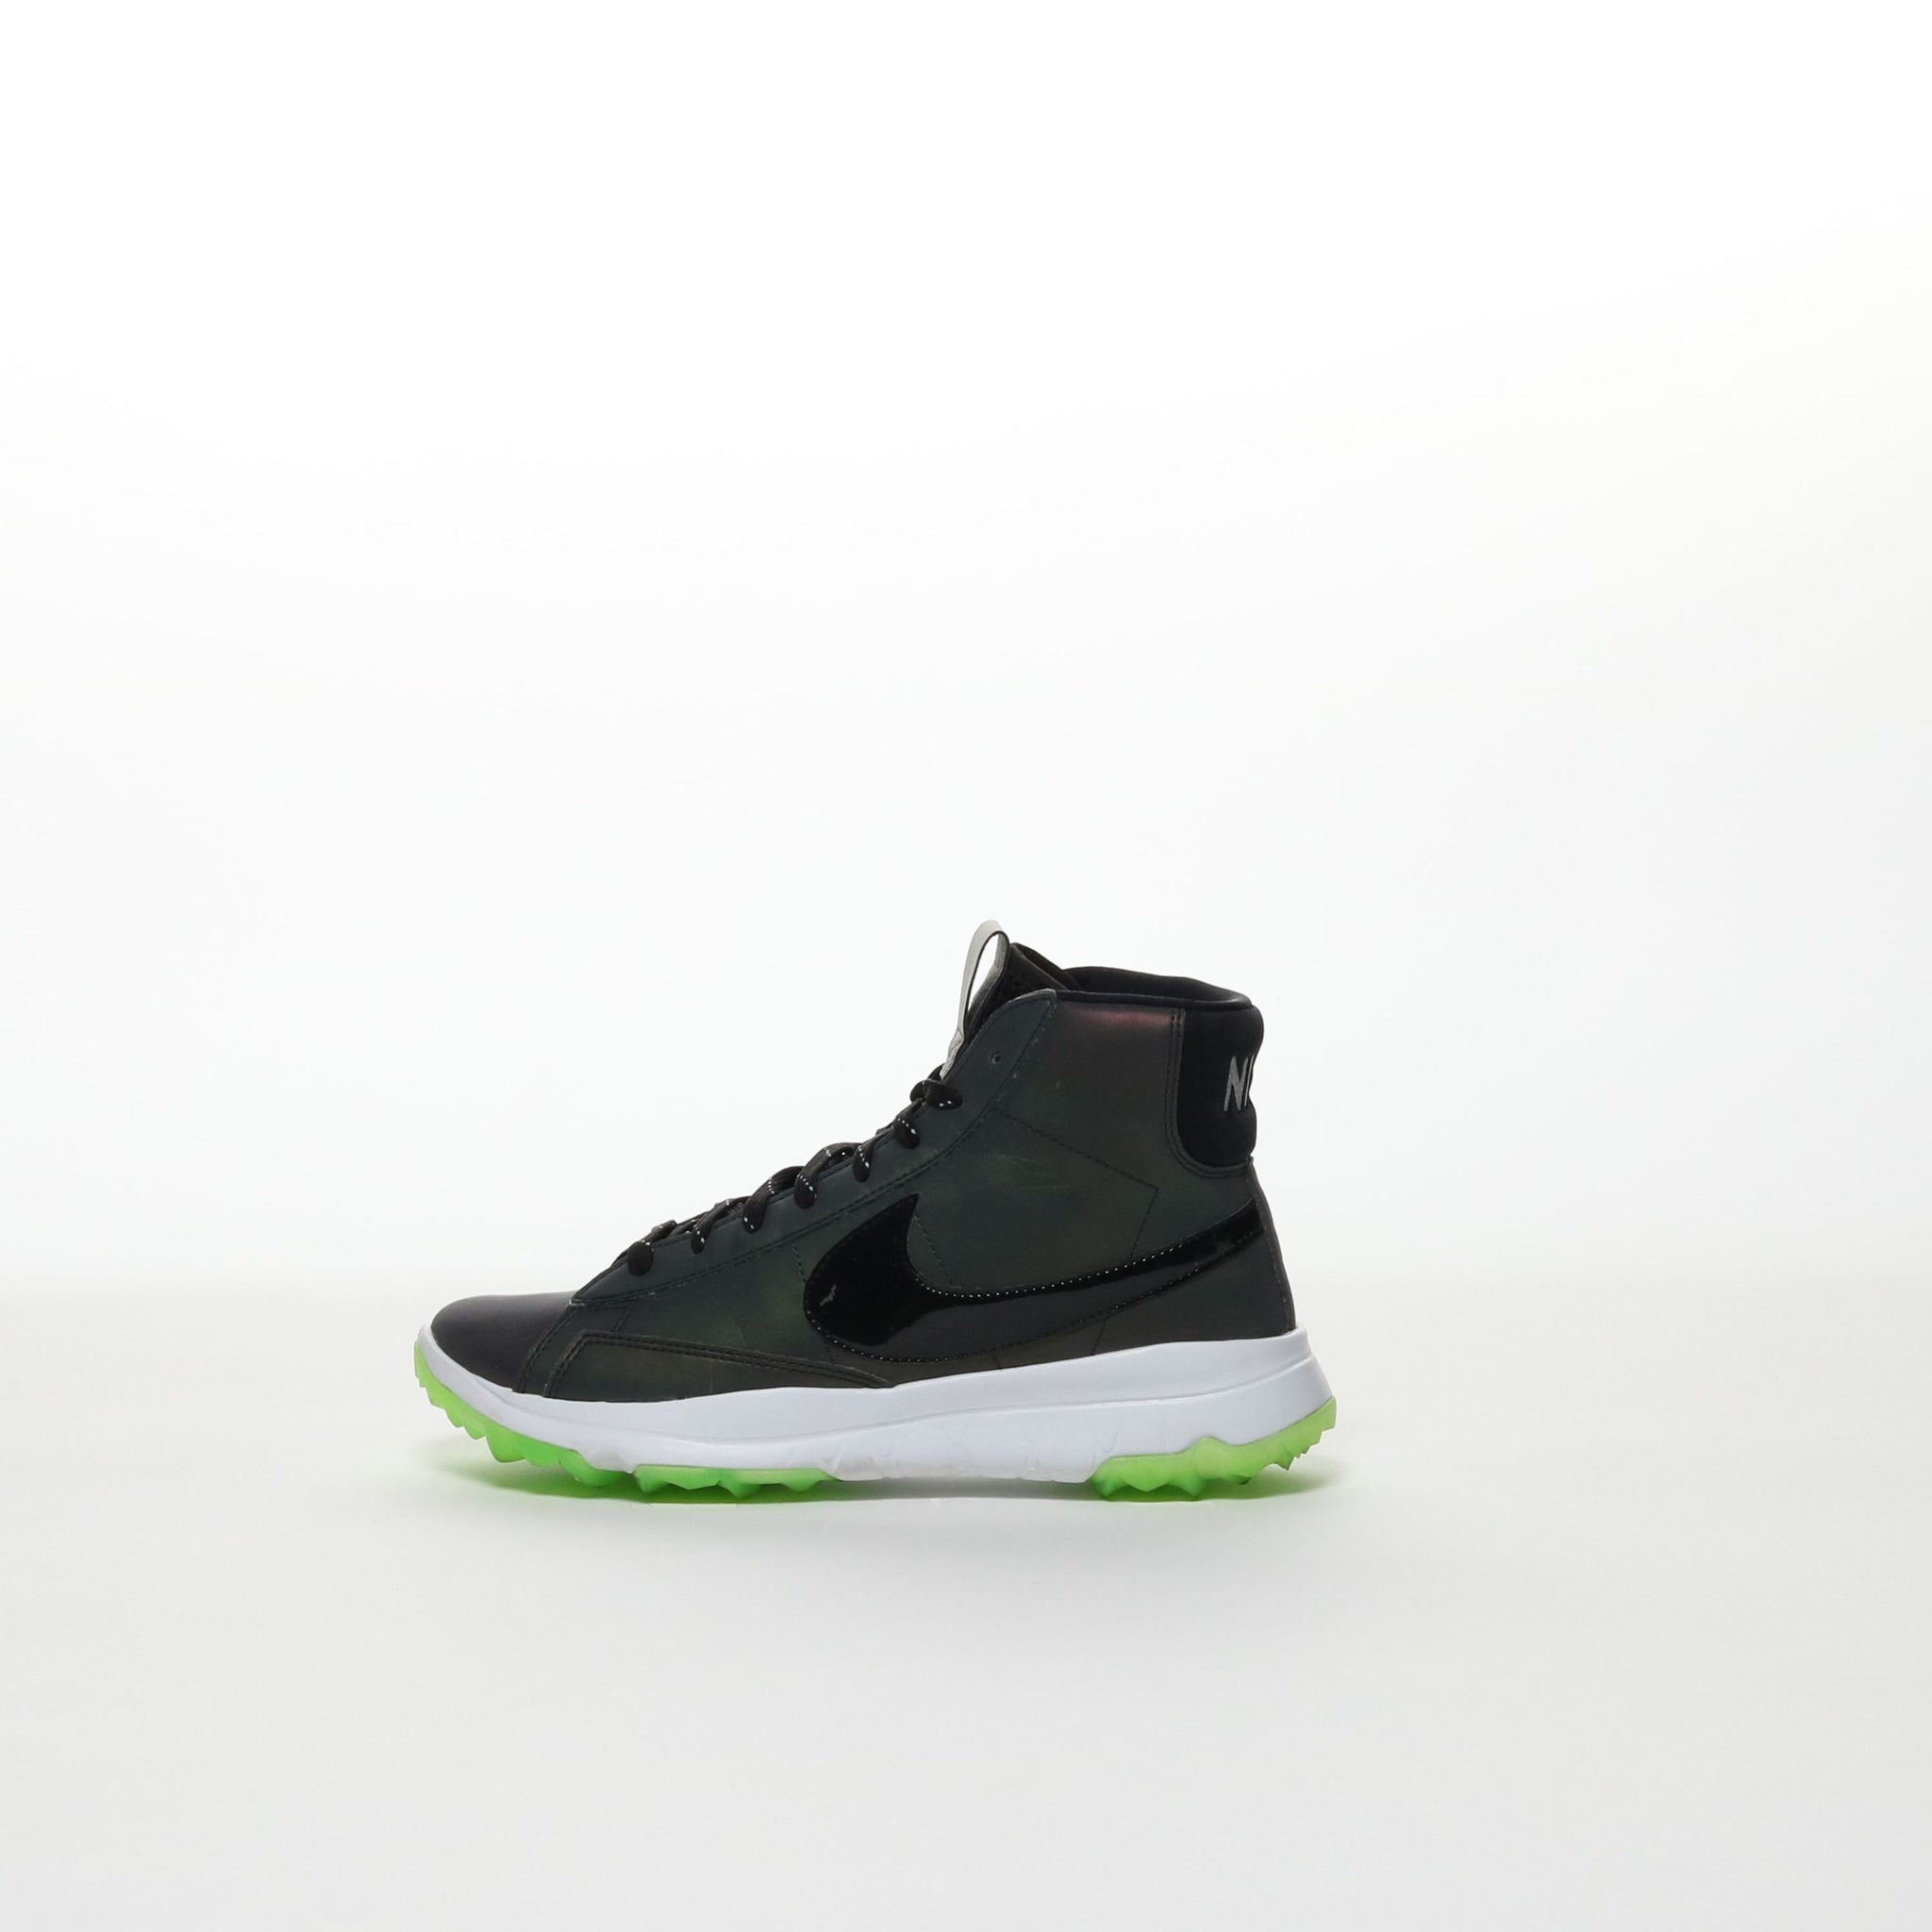 new product e1191 9d164 WMNS NIKE BLAZER NGC - ANTHRA BLACK